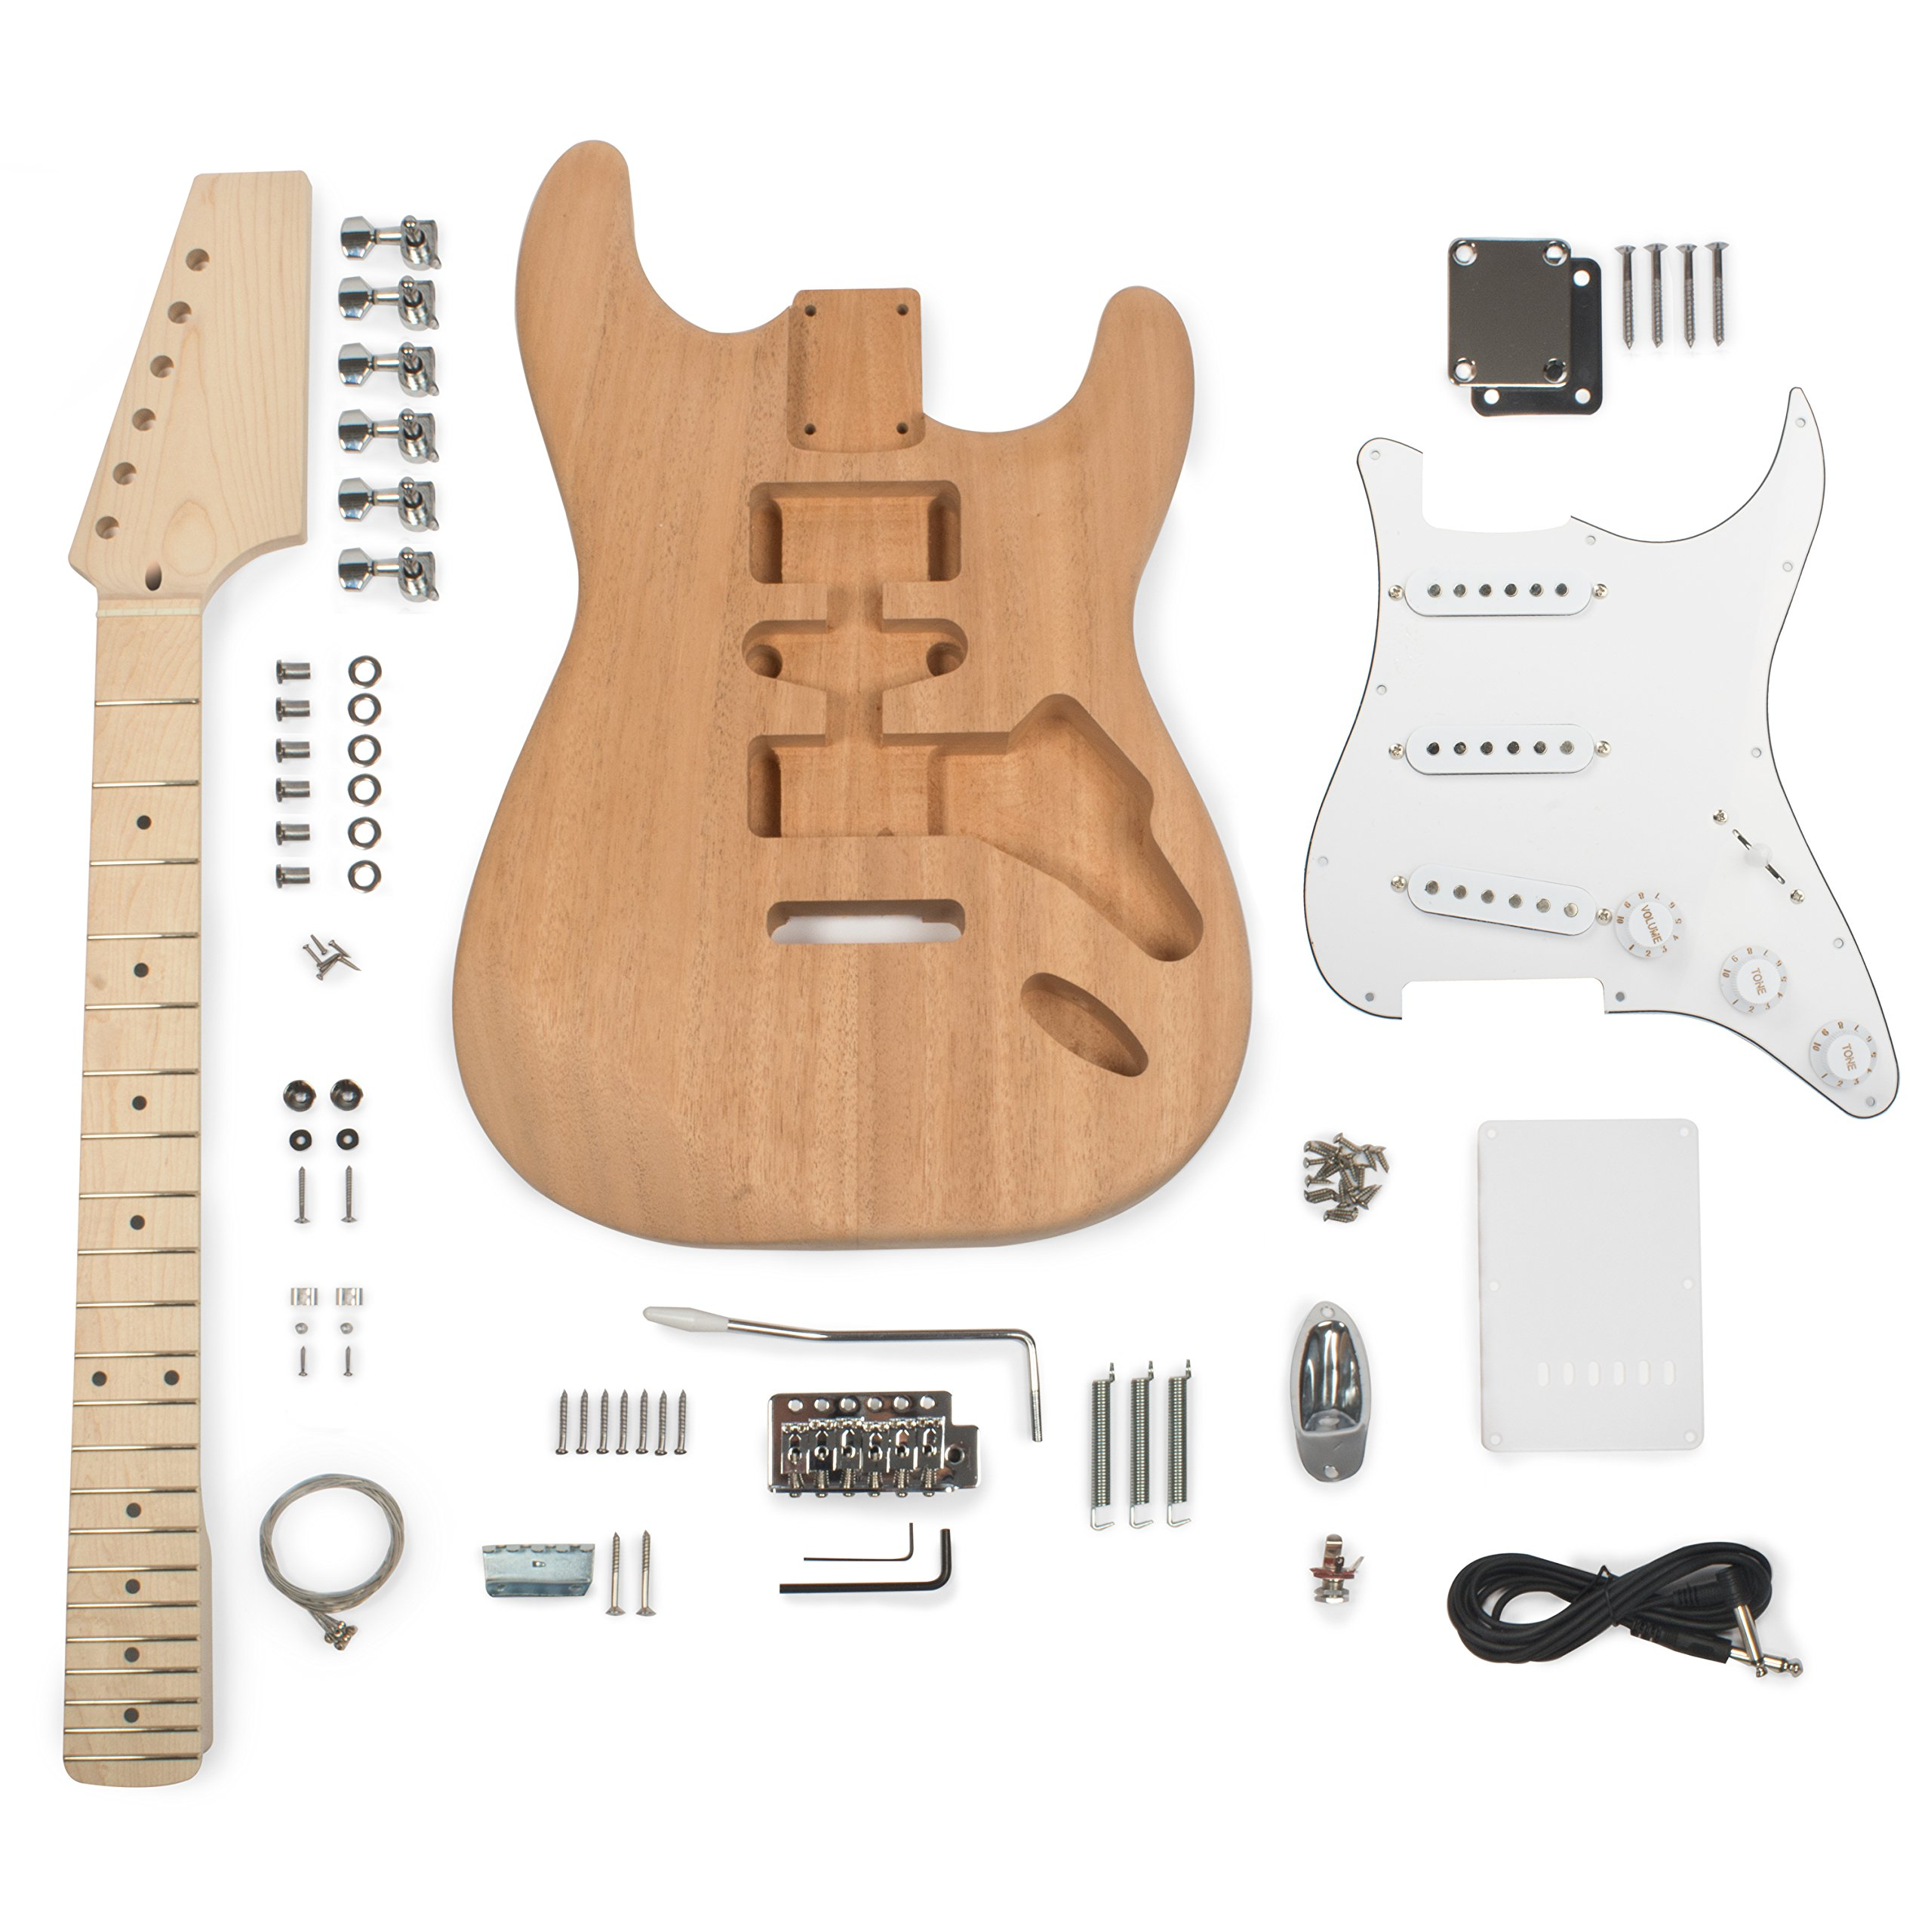 Cheap StewMac Build Your Own S-Style Electric Guitar Kit Black Friday & Cyber Monday 2019